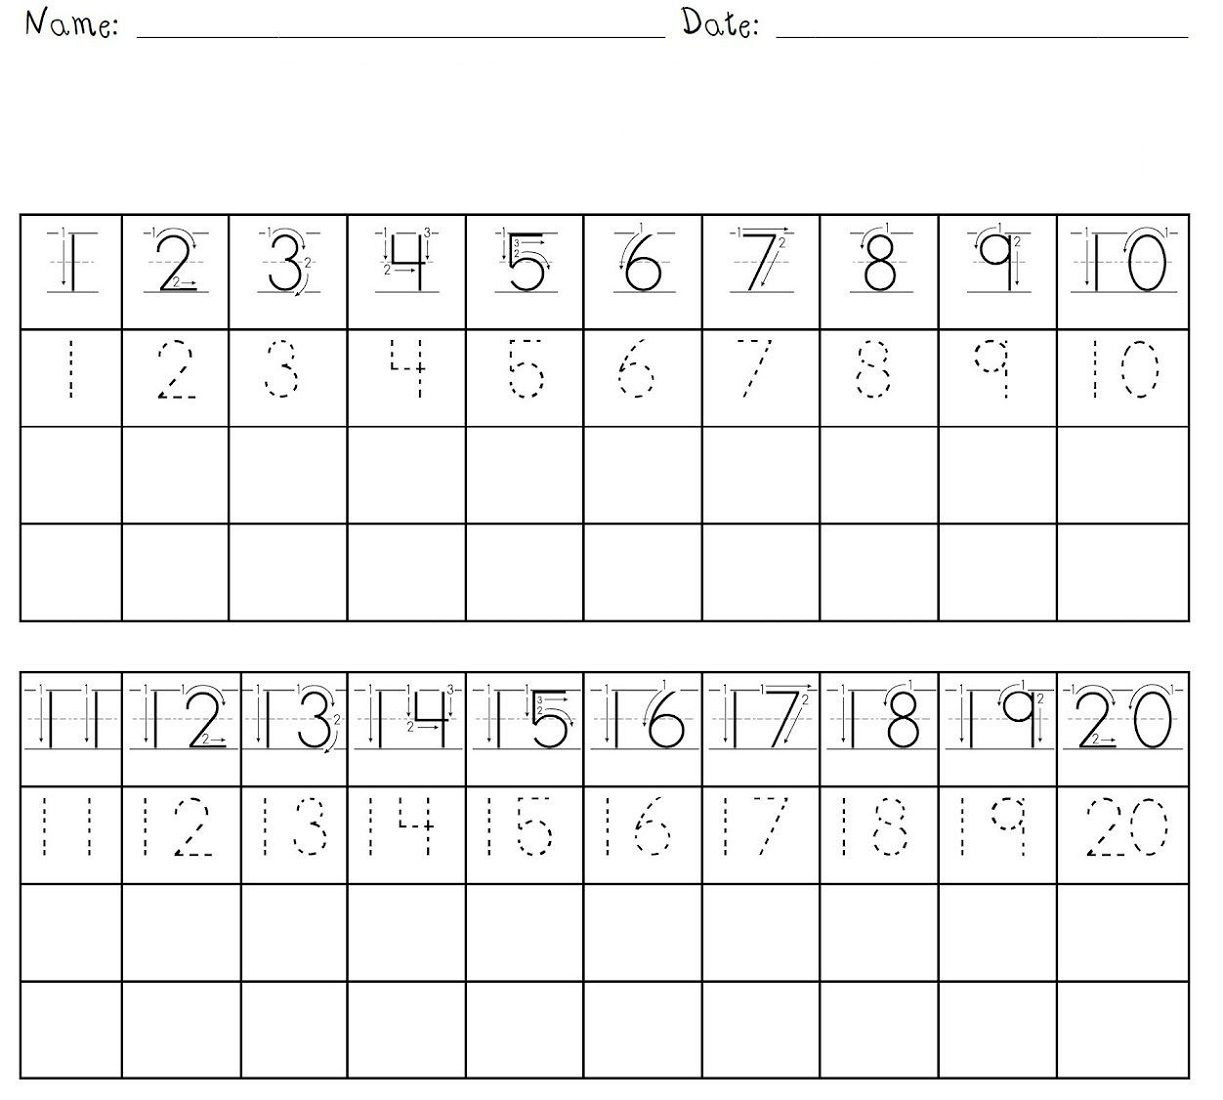 Number Writing Worksheets 1 20 Letter M Tracing Worksheet Page 4 Writing Numbers Worksheets